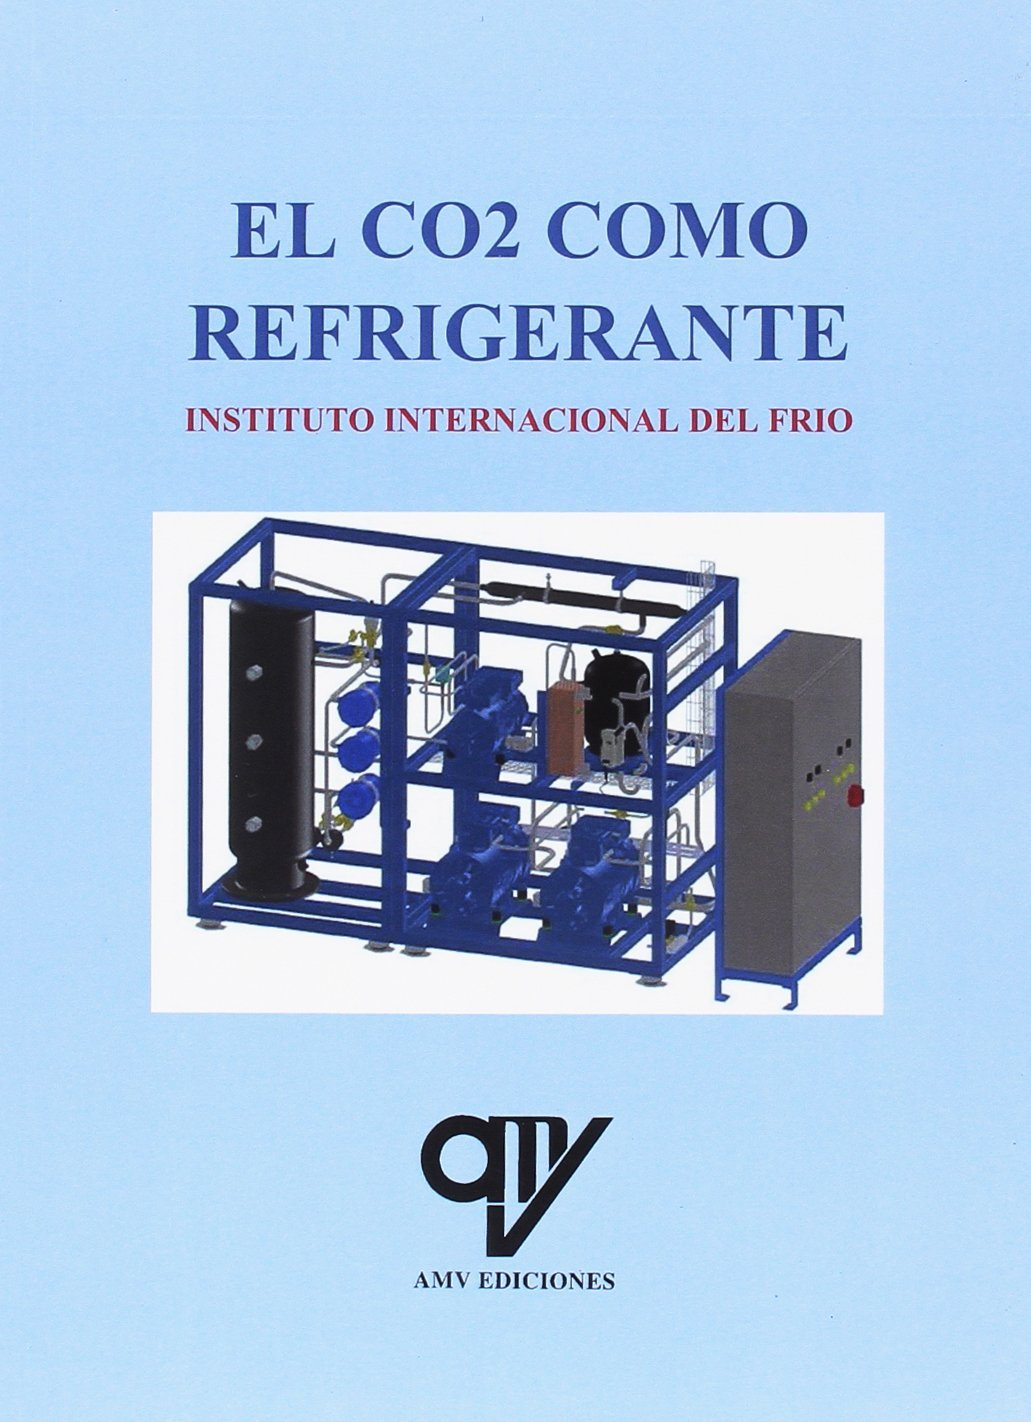 El CO2 como refrigerante: Amazon.es: Instituto Internacional del ...